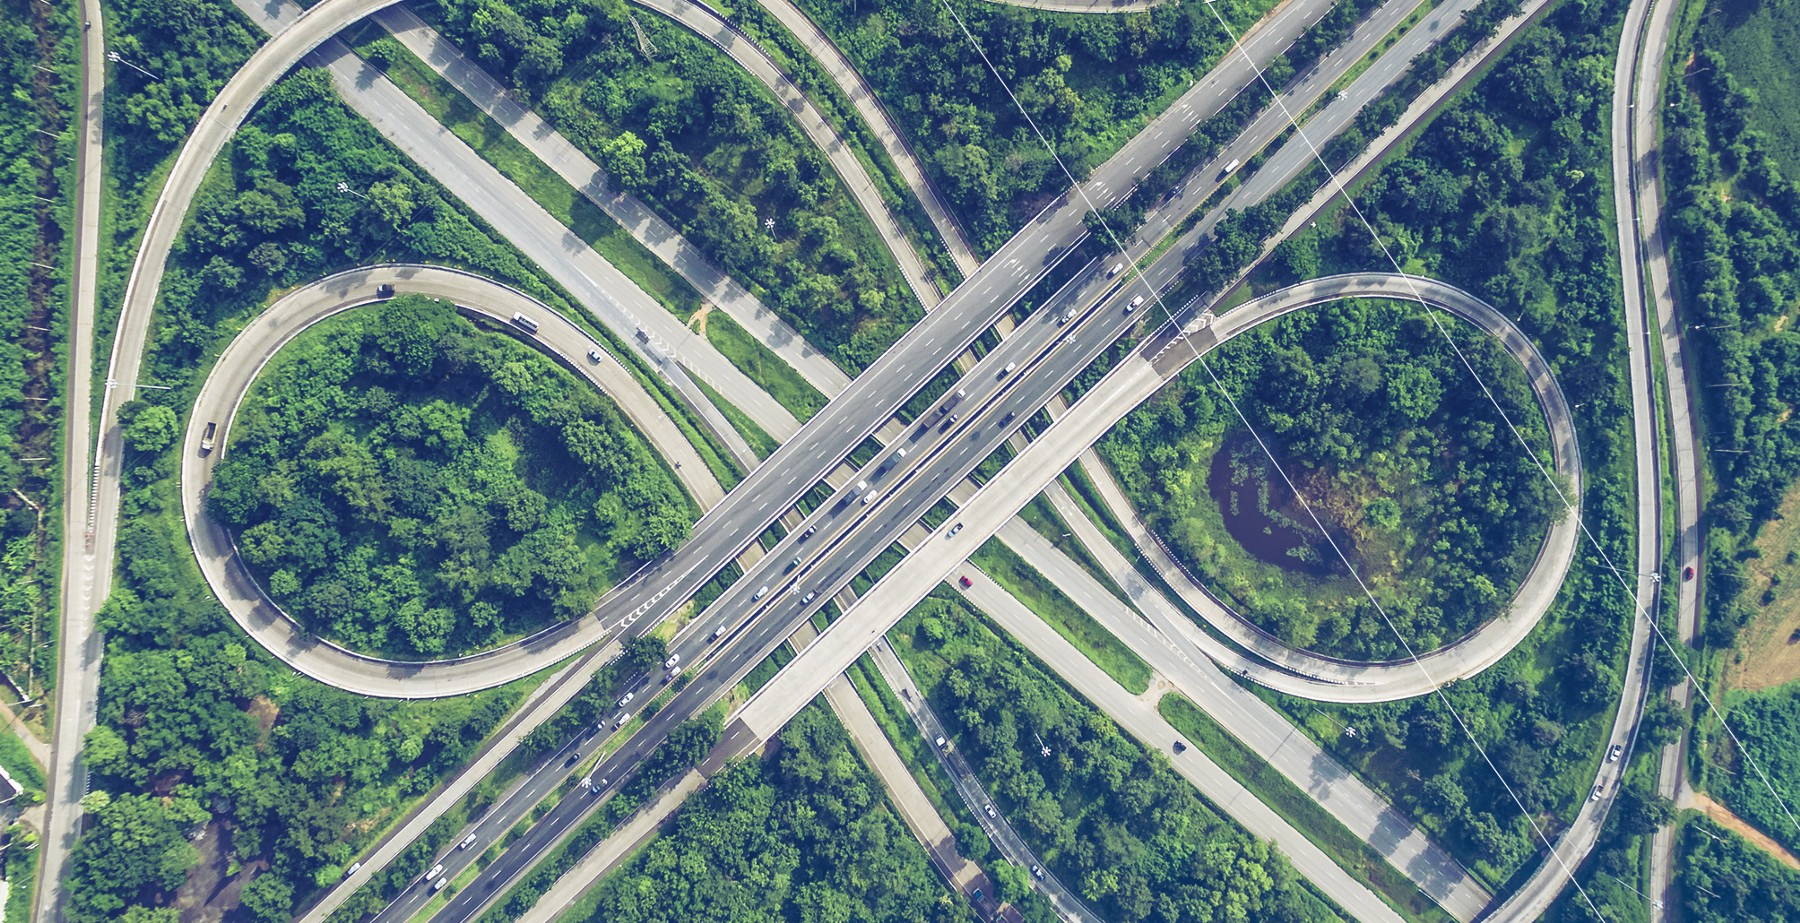 Infrastructure Projects' Long-Term Value Will Rely on IoT